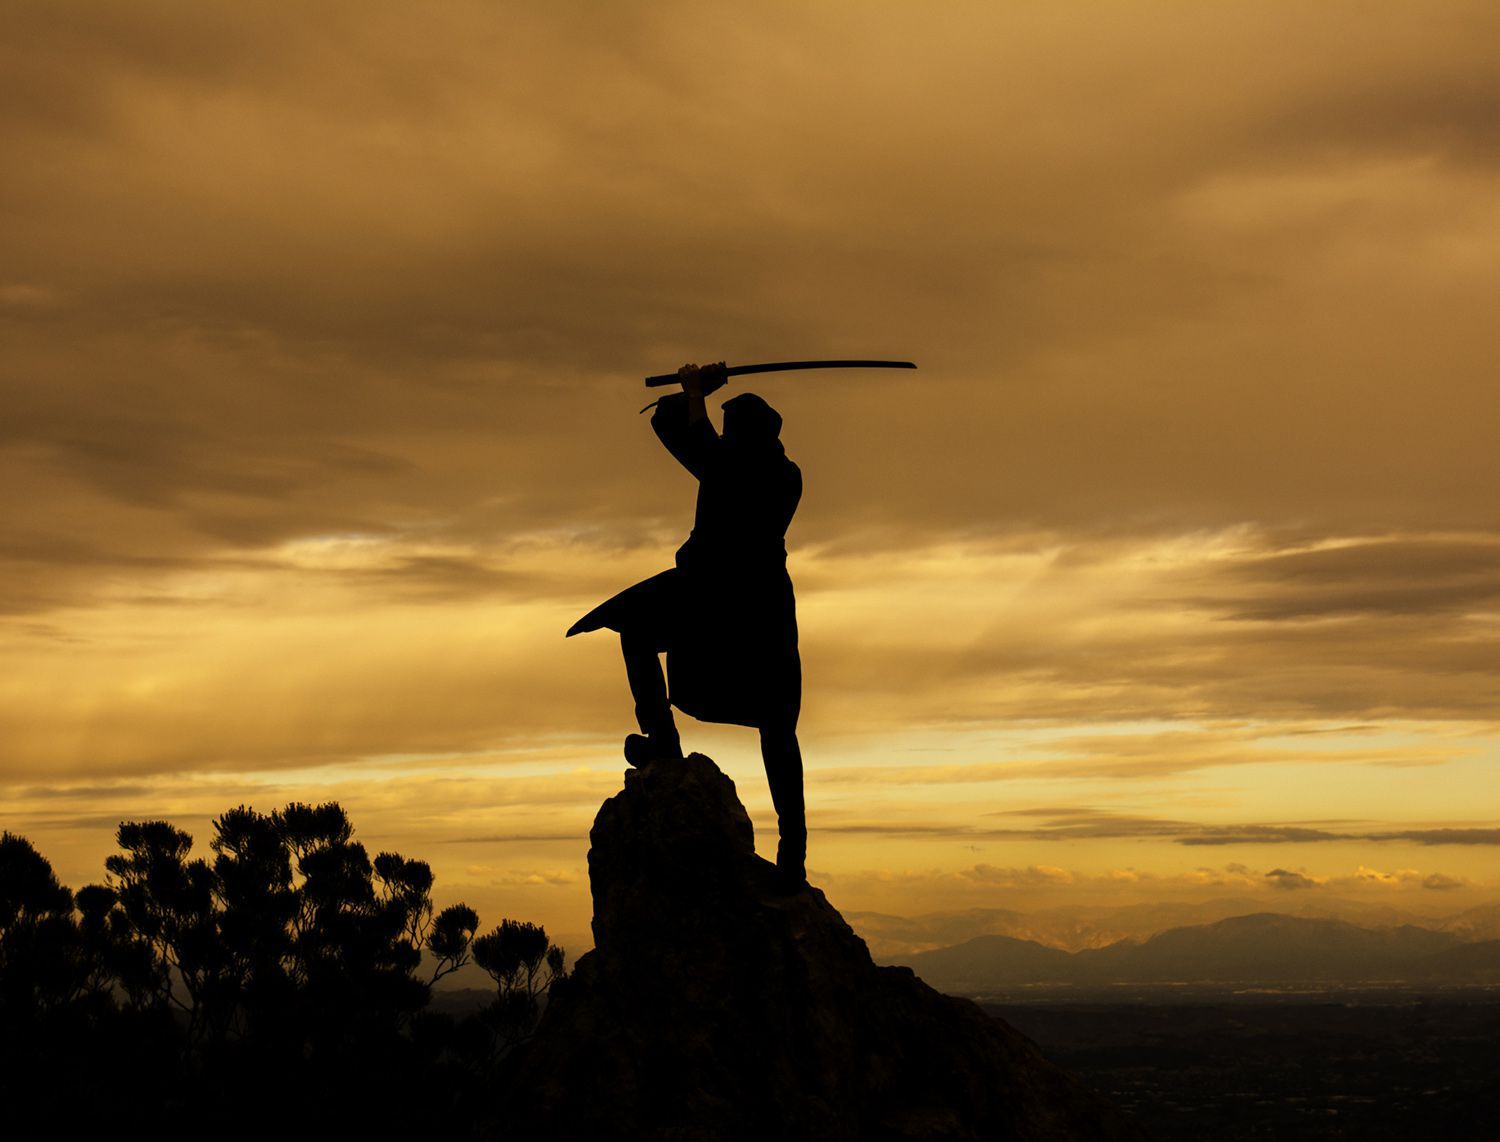 Silhouette of a man wielding a sword above his head standing dramatically on a rock